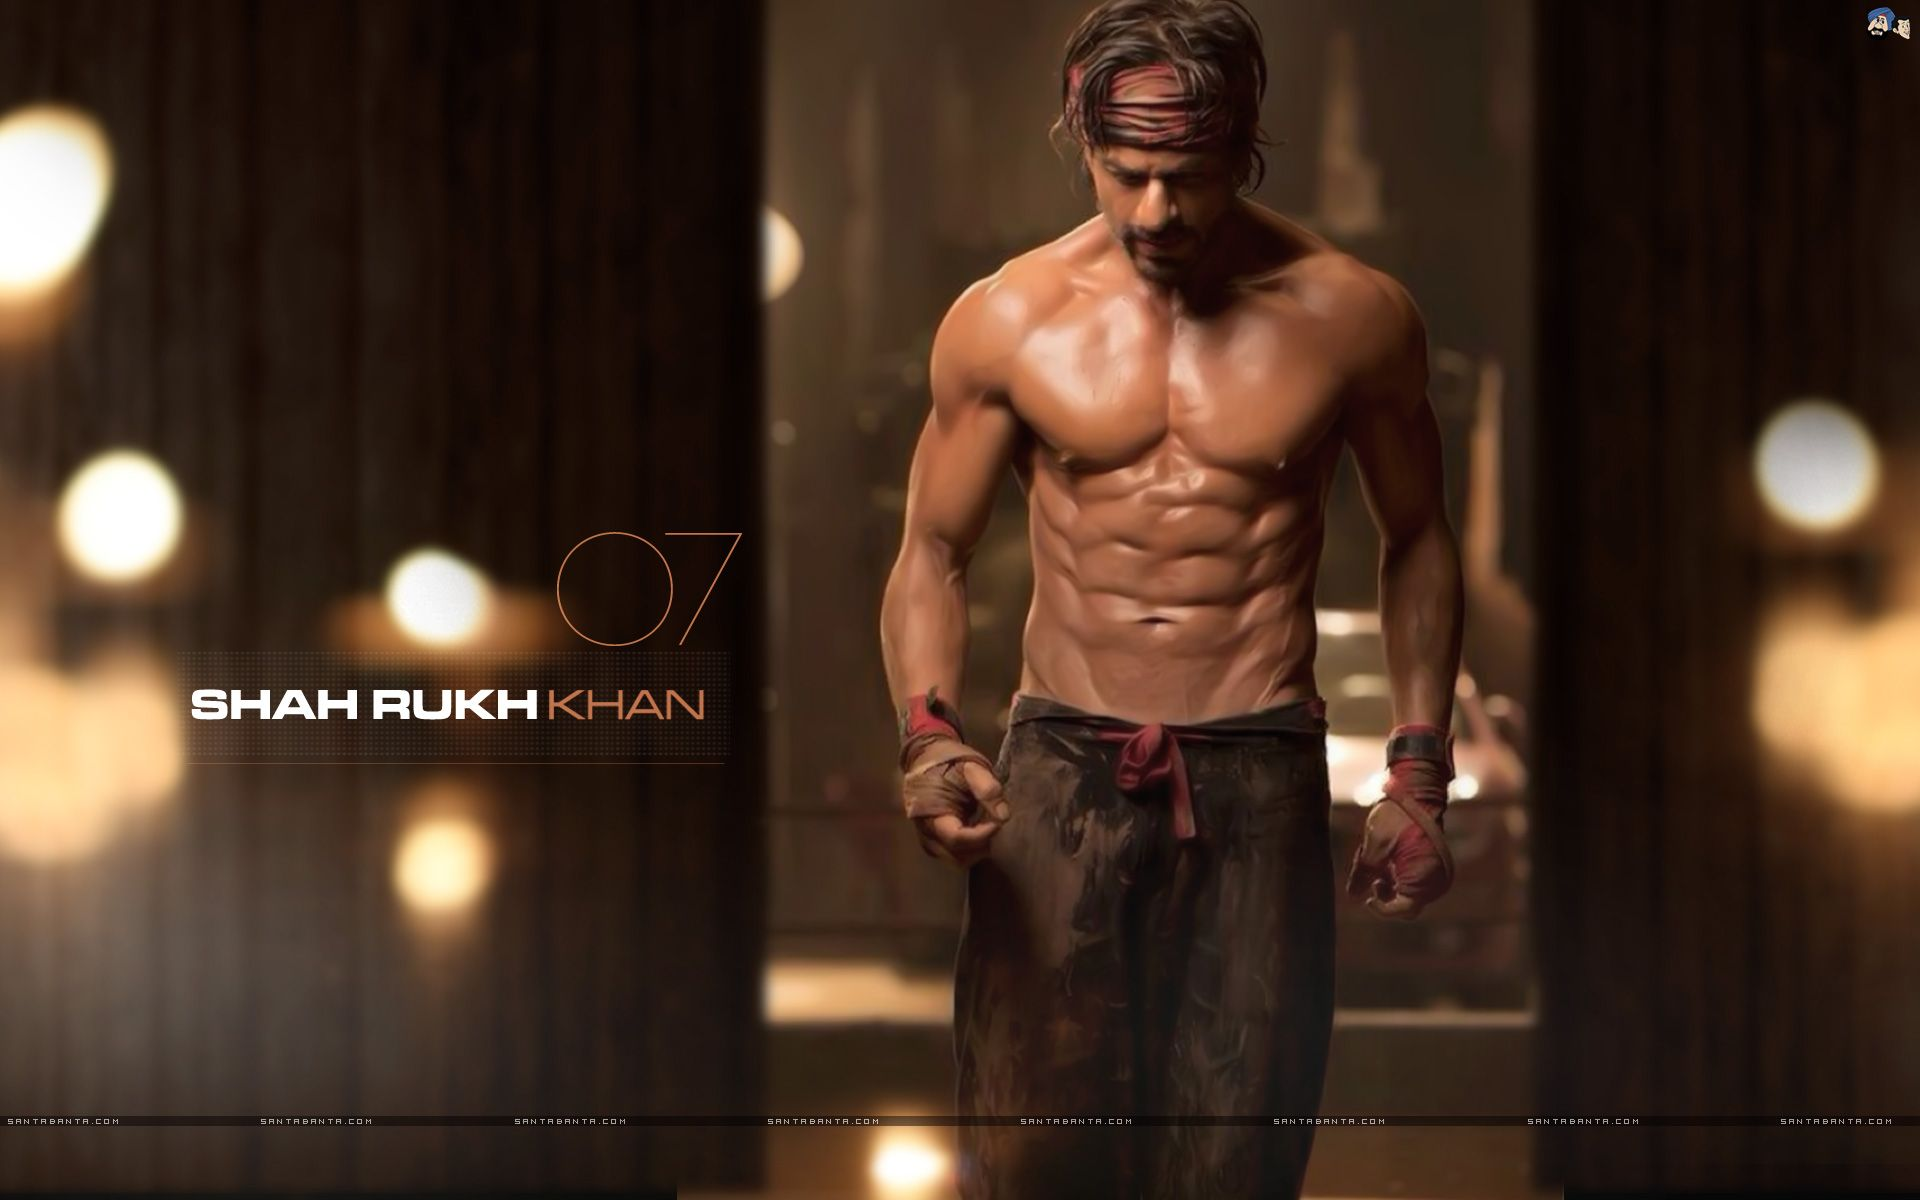 #RIPPED #8 #PACKS #SHAHRUKHKHAN #IAMSKR #KING #KHAN